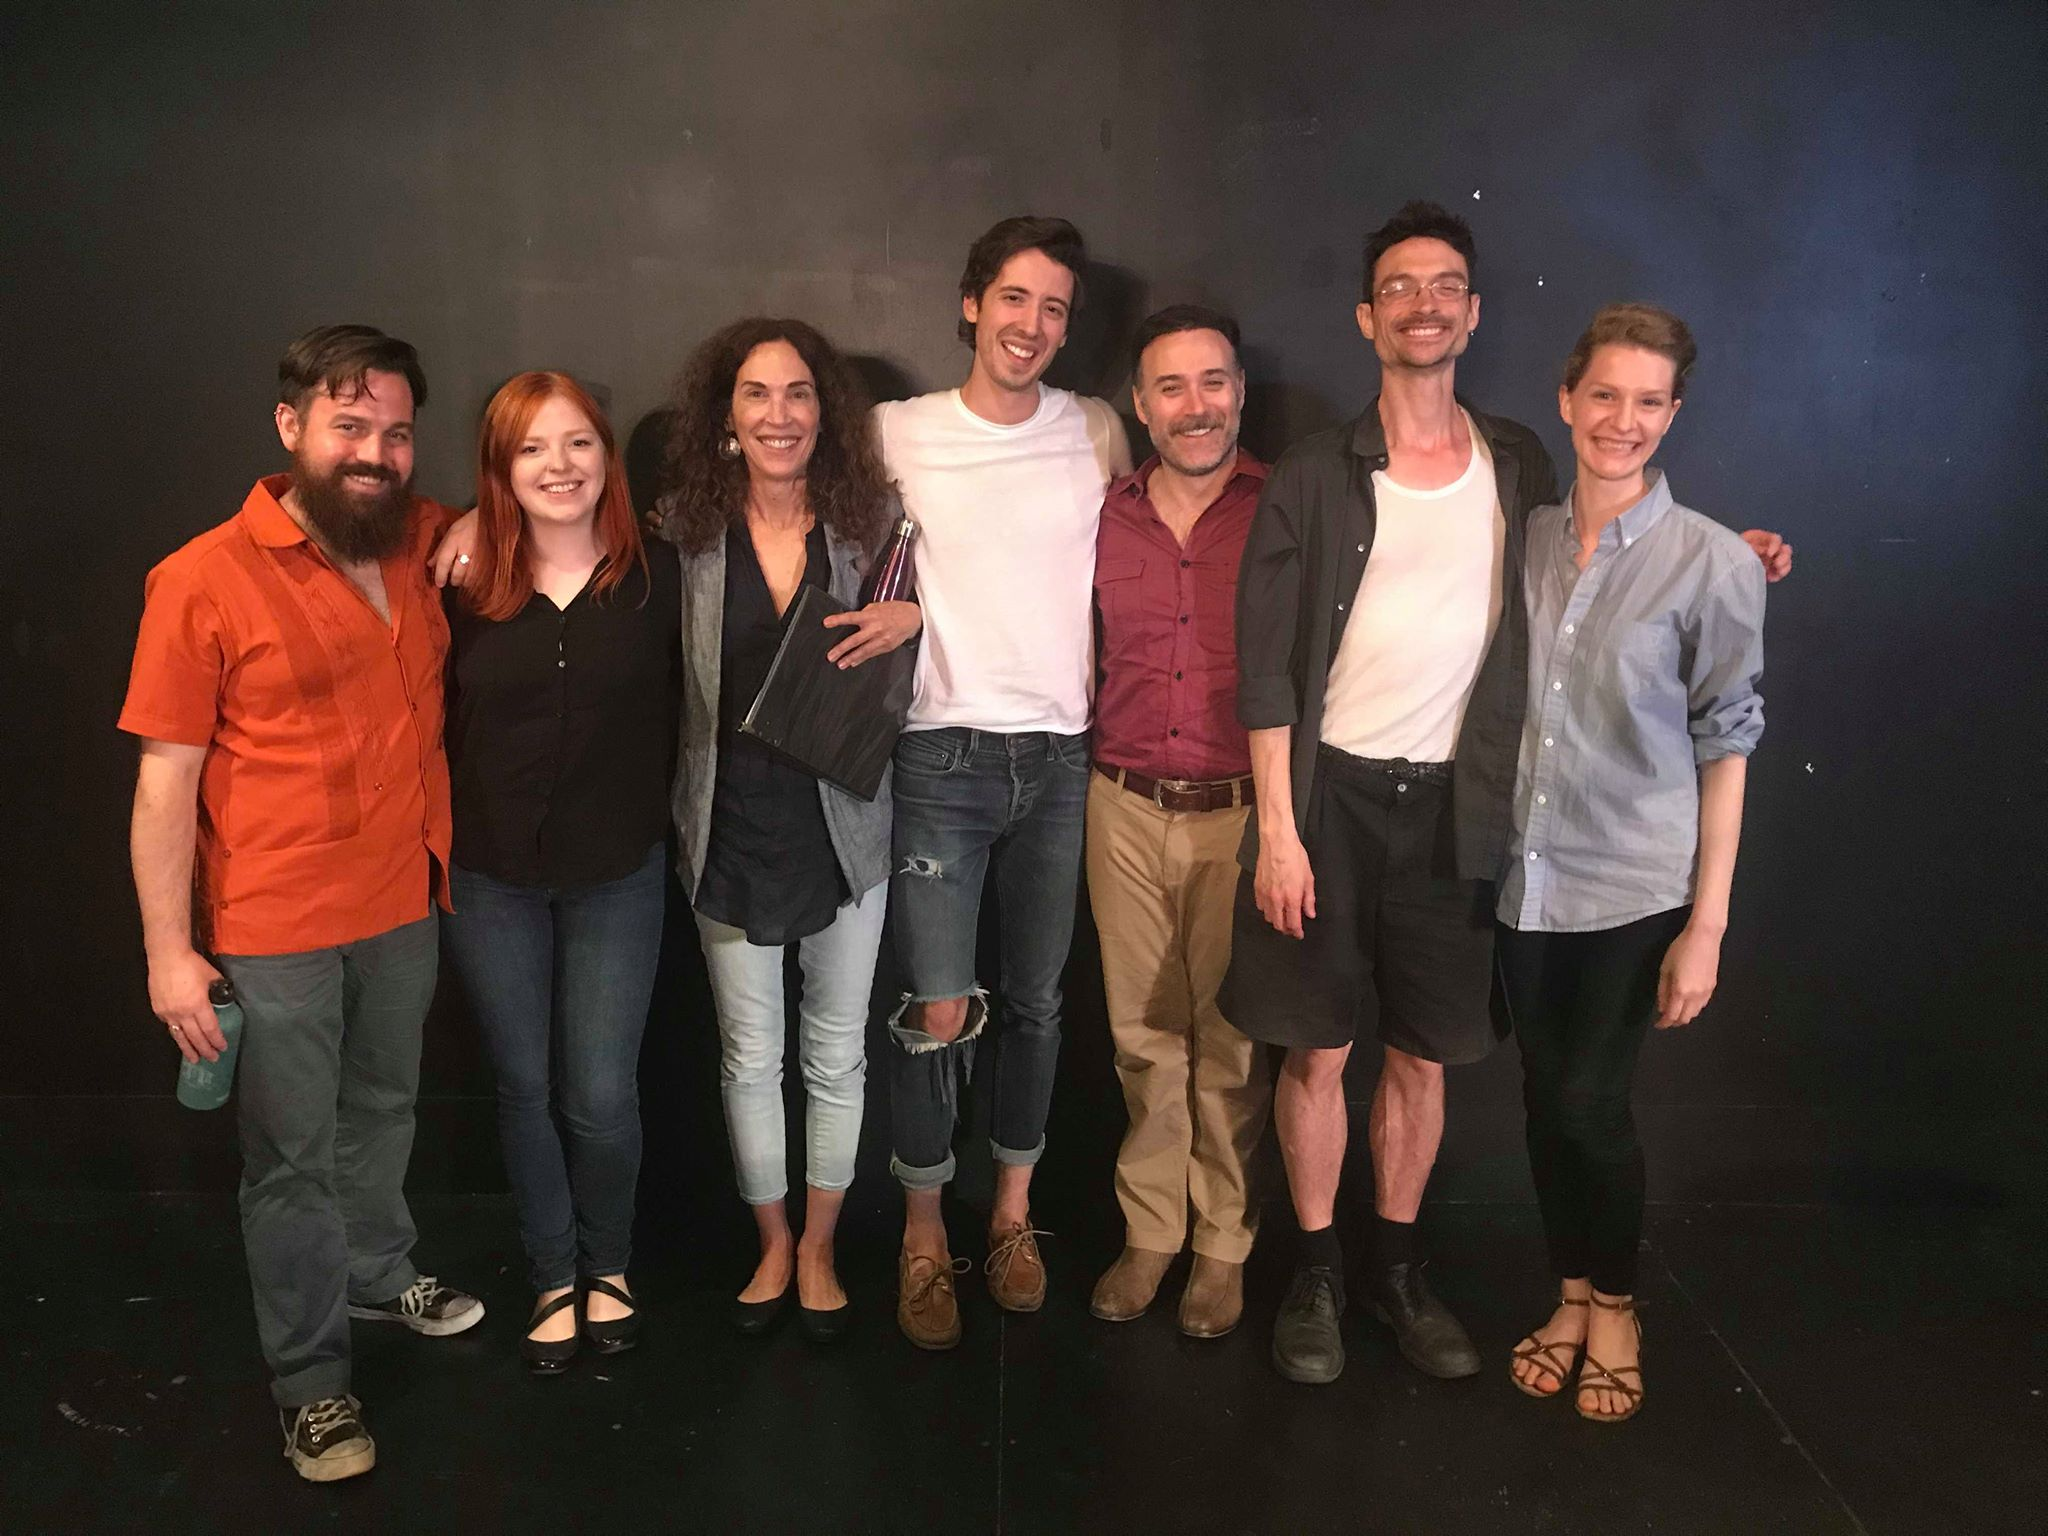 The cast of Friday's public reading at the Tarragon Theatre, Toronto.L-R: Scott Emerson Moyle; Amy Keller; Liz Best; Alex Zonjic; M. John Kennedy; director Eric Benson,and Krystina Bojonowski. I'm just going to guess who they were playing: Scott as Dany; Amy as Maryline; Liz as Sylvie; Alex as Olivier; John as M. Picard; and Krystina as Alexe. (Did I get it right?)